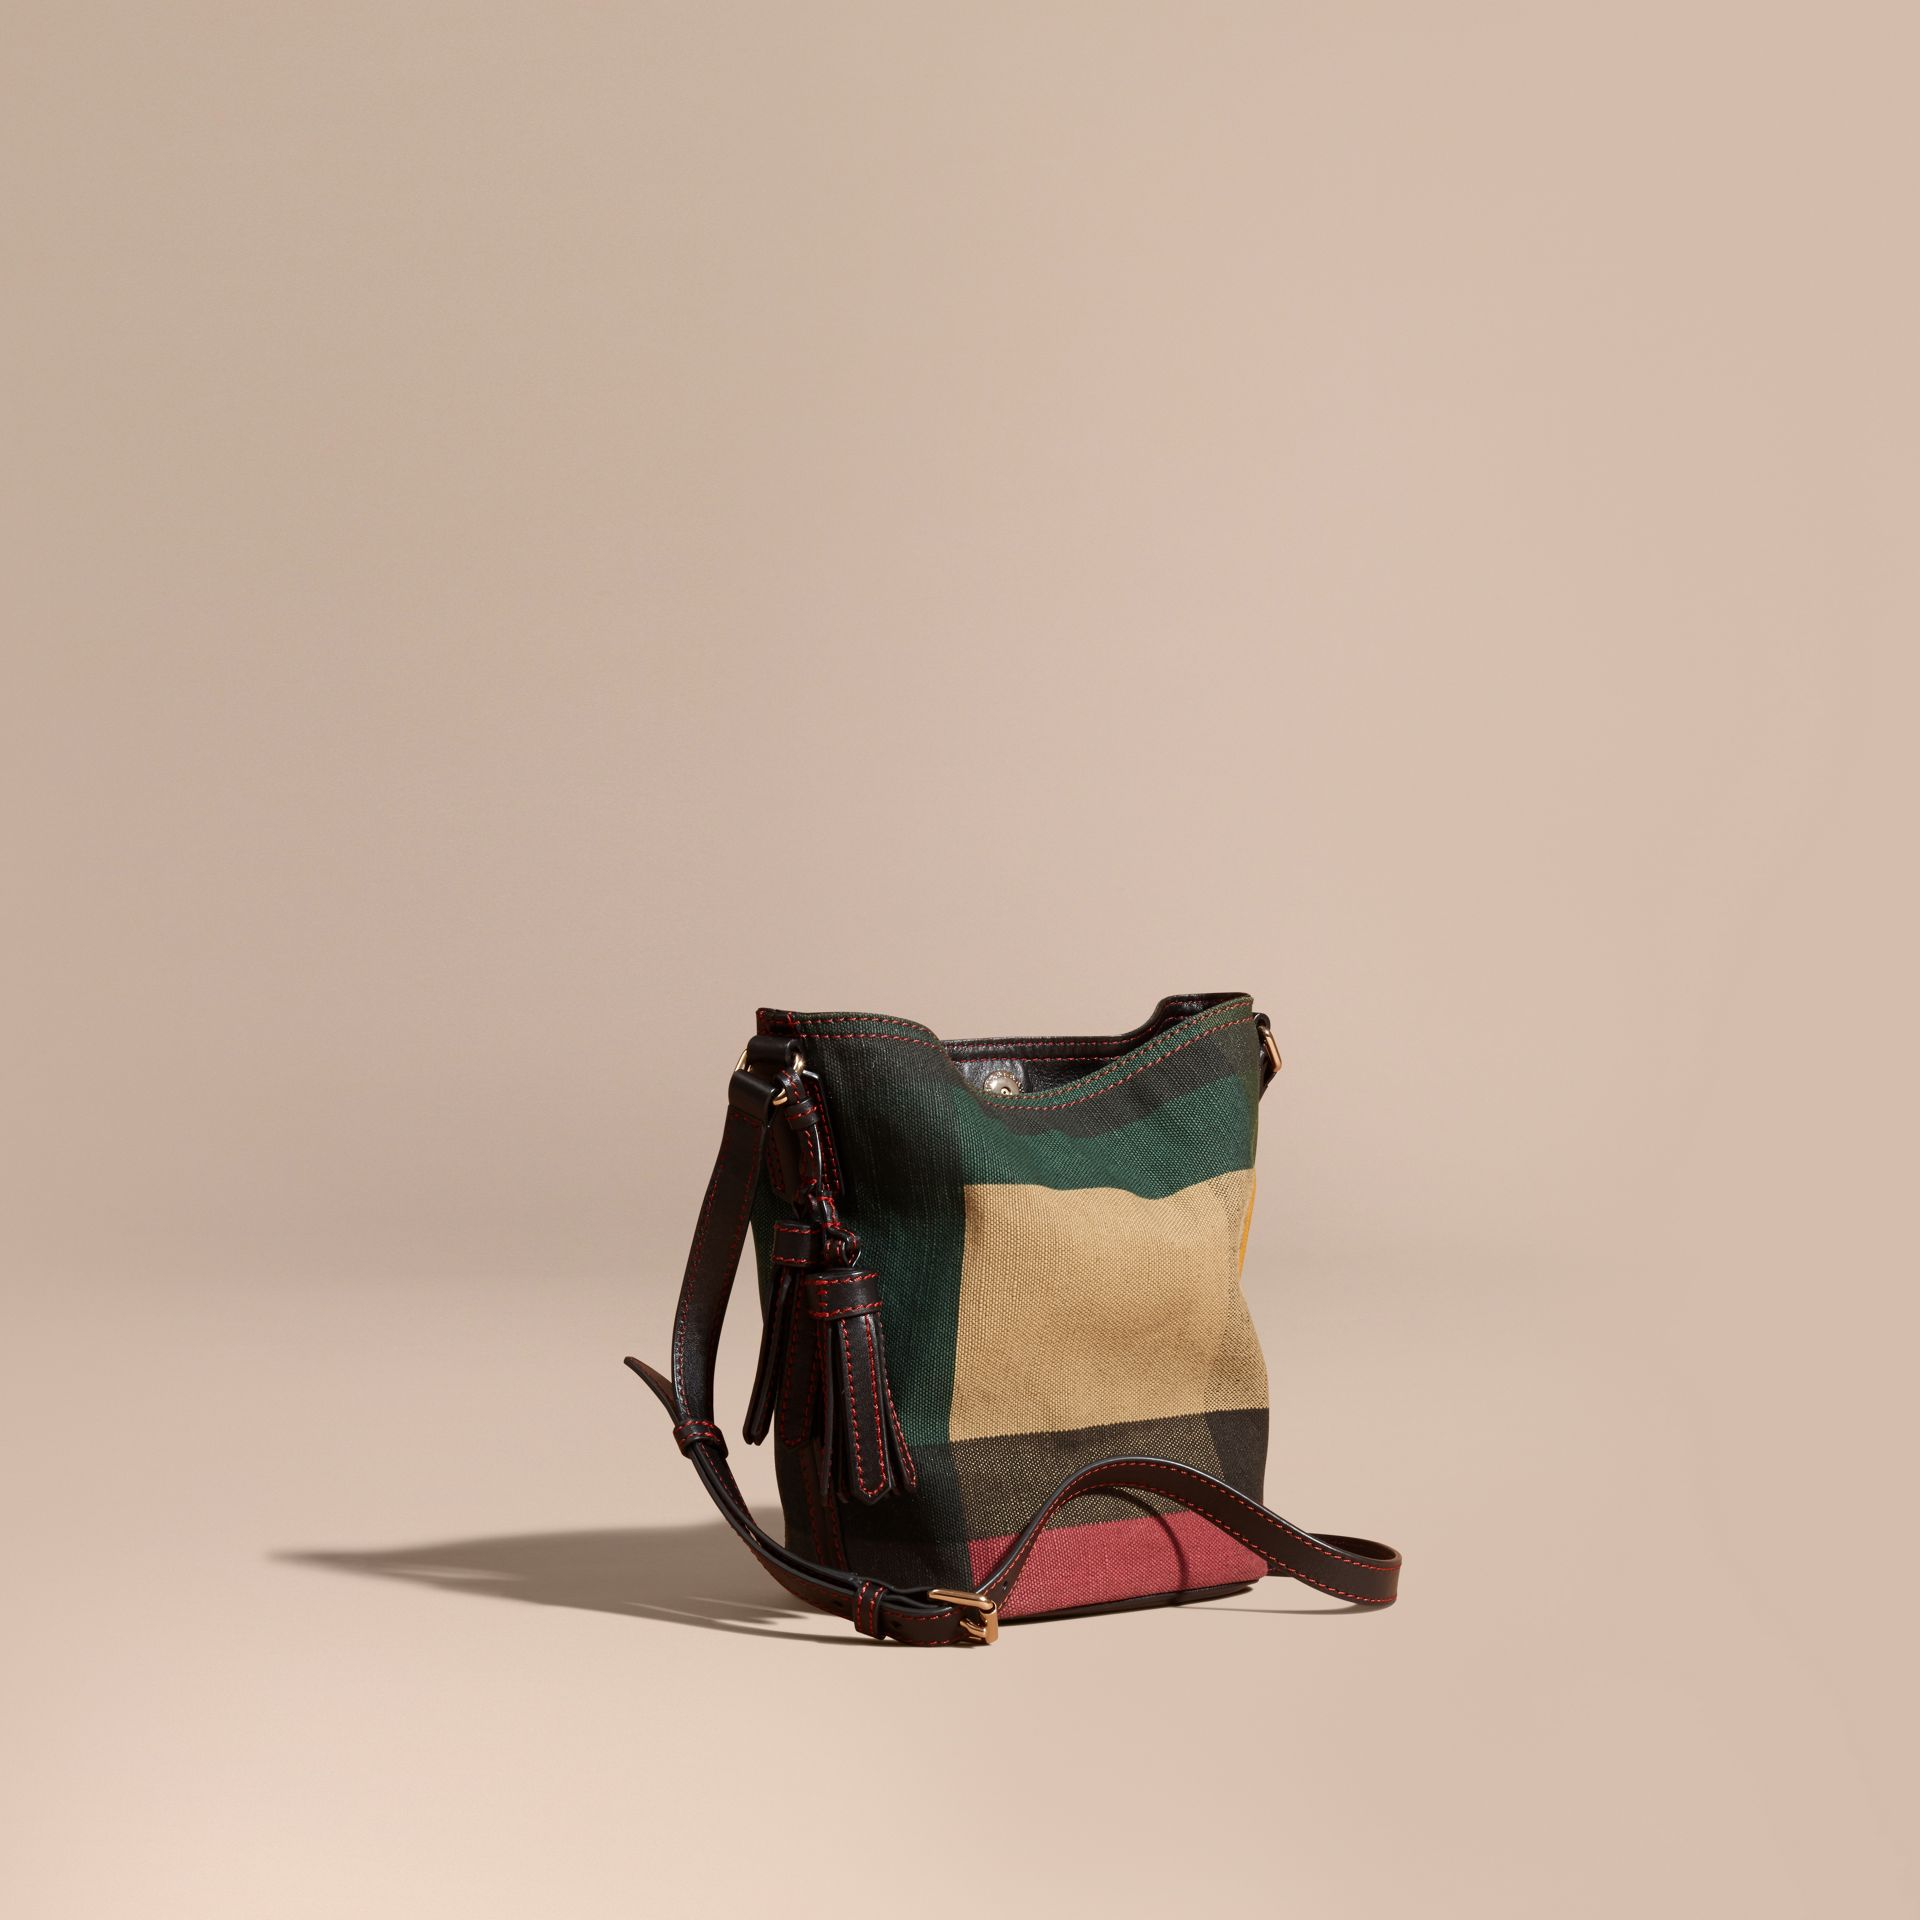 Black The Small Ashby in Printed Canvas Check and Leather - gallery image 1